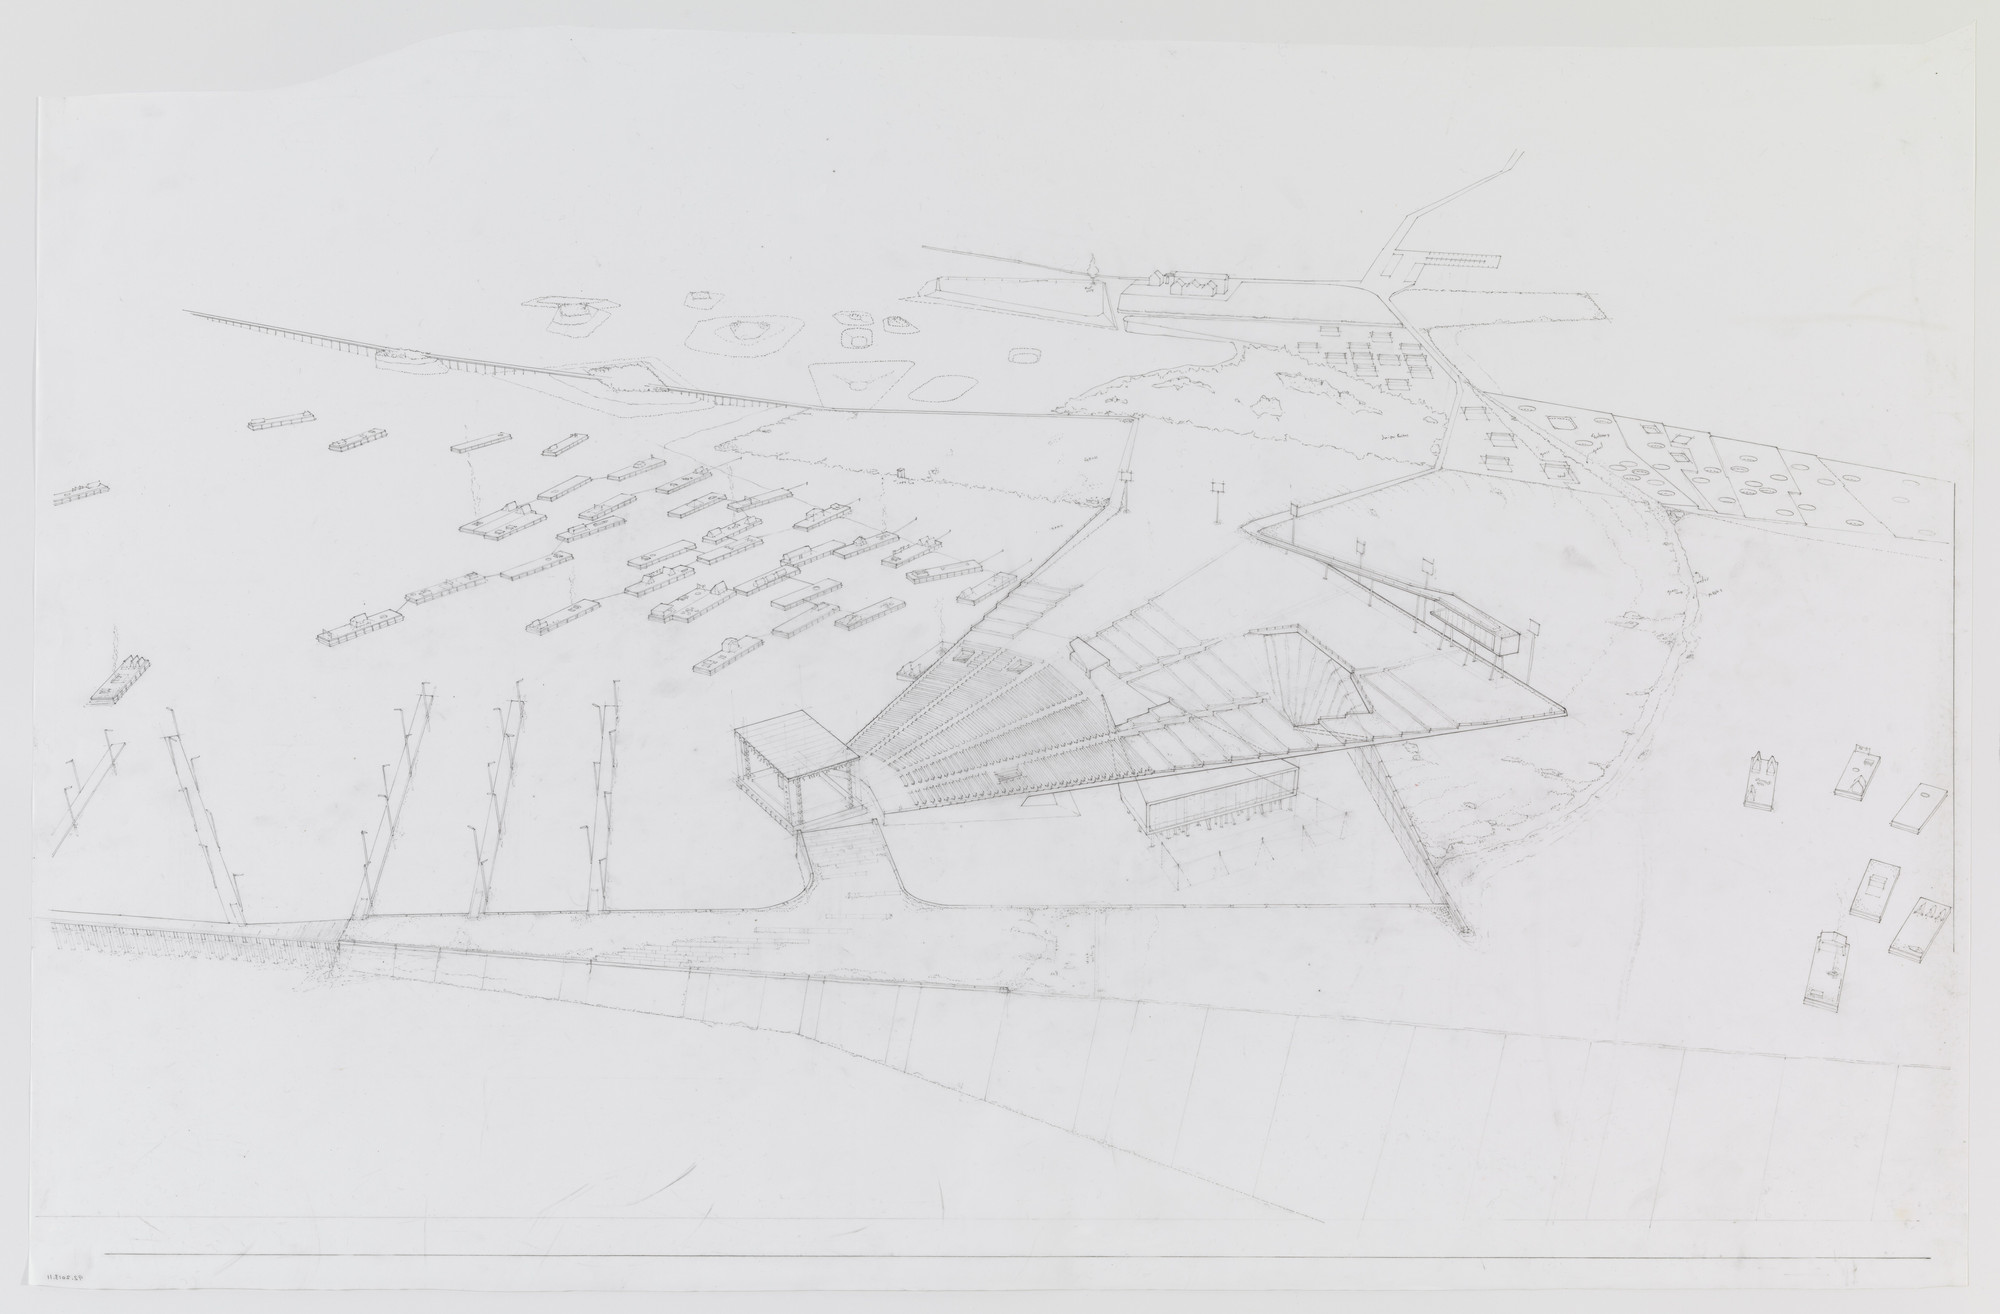 Paul Lewis, Marc Tsurumaki, David J. Lewis. Amphitheater, Water Proving Ground Project, Liberty State Park, NJ (Aerial perspective). 2010